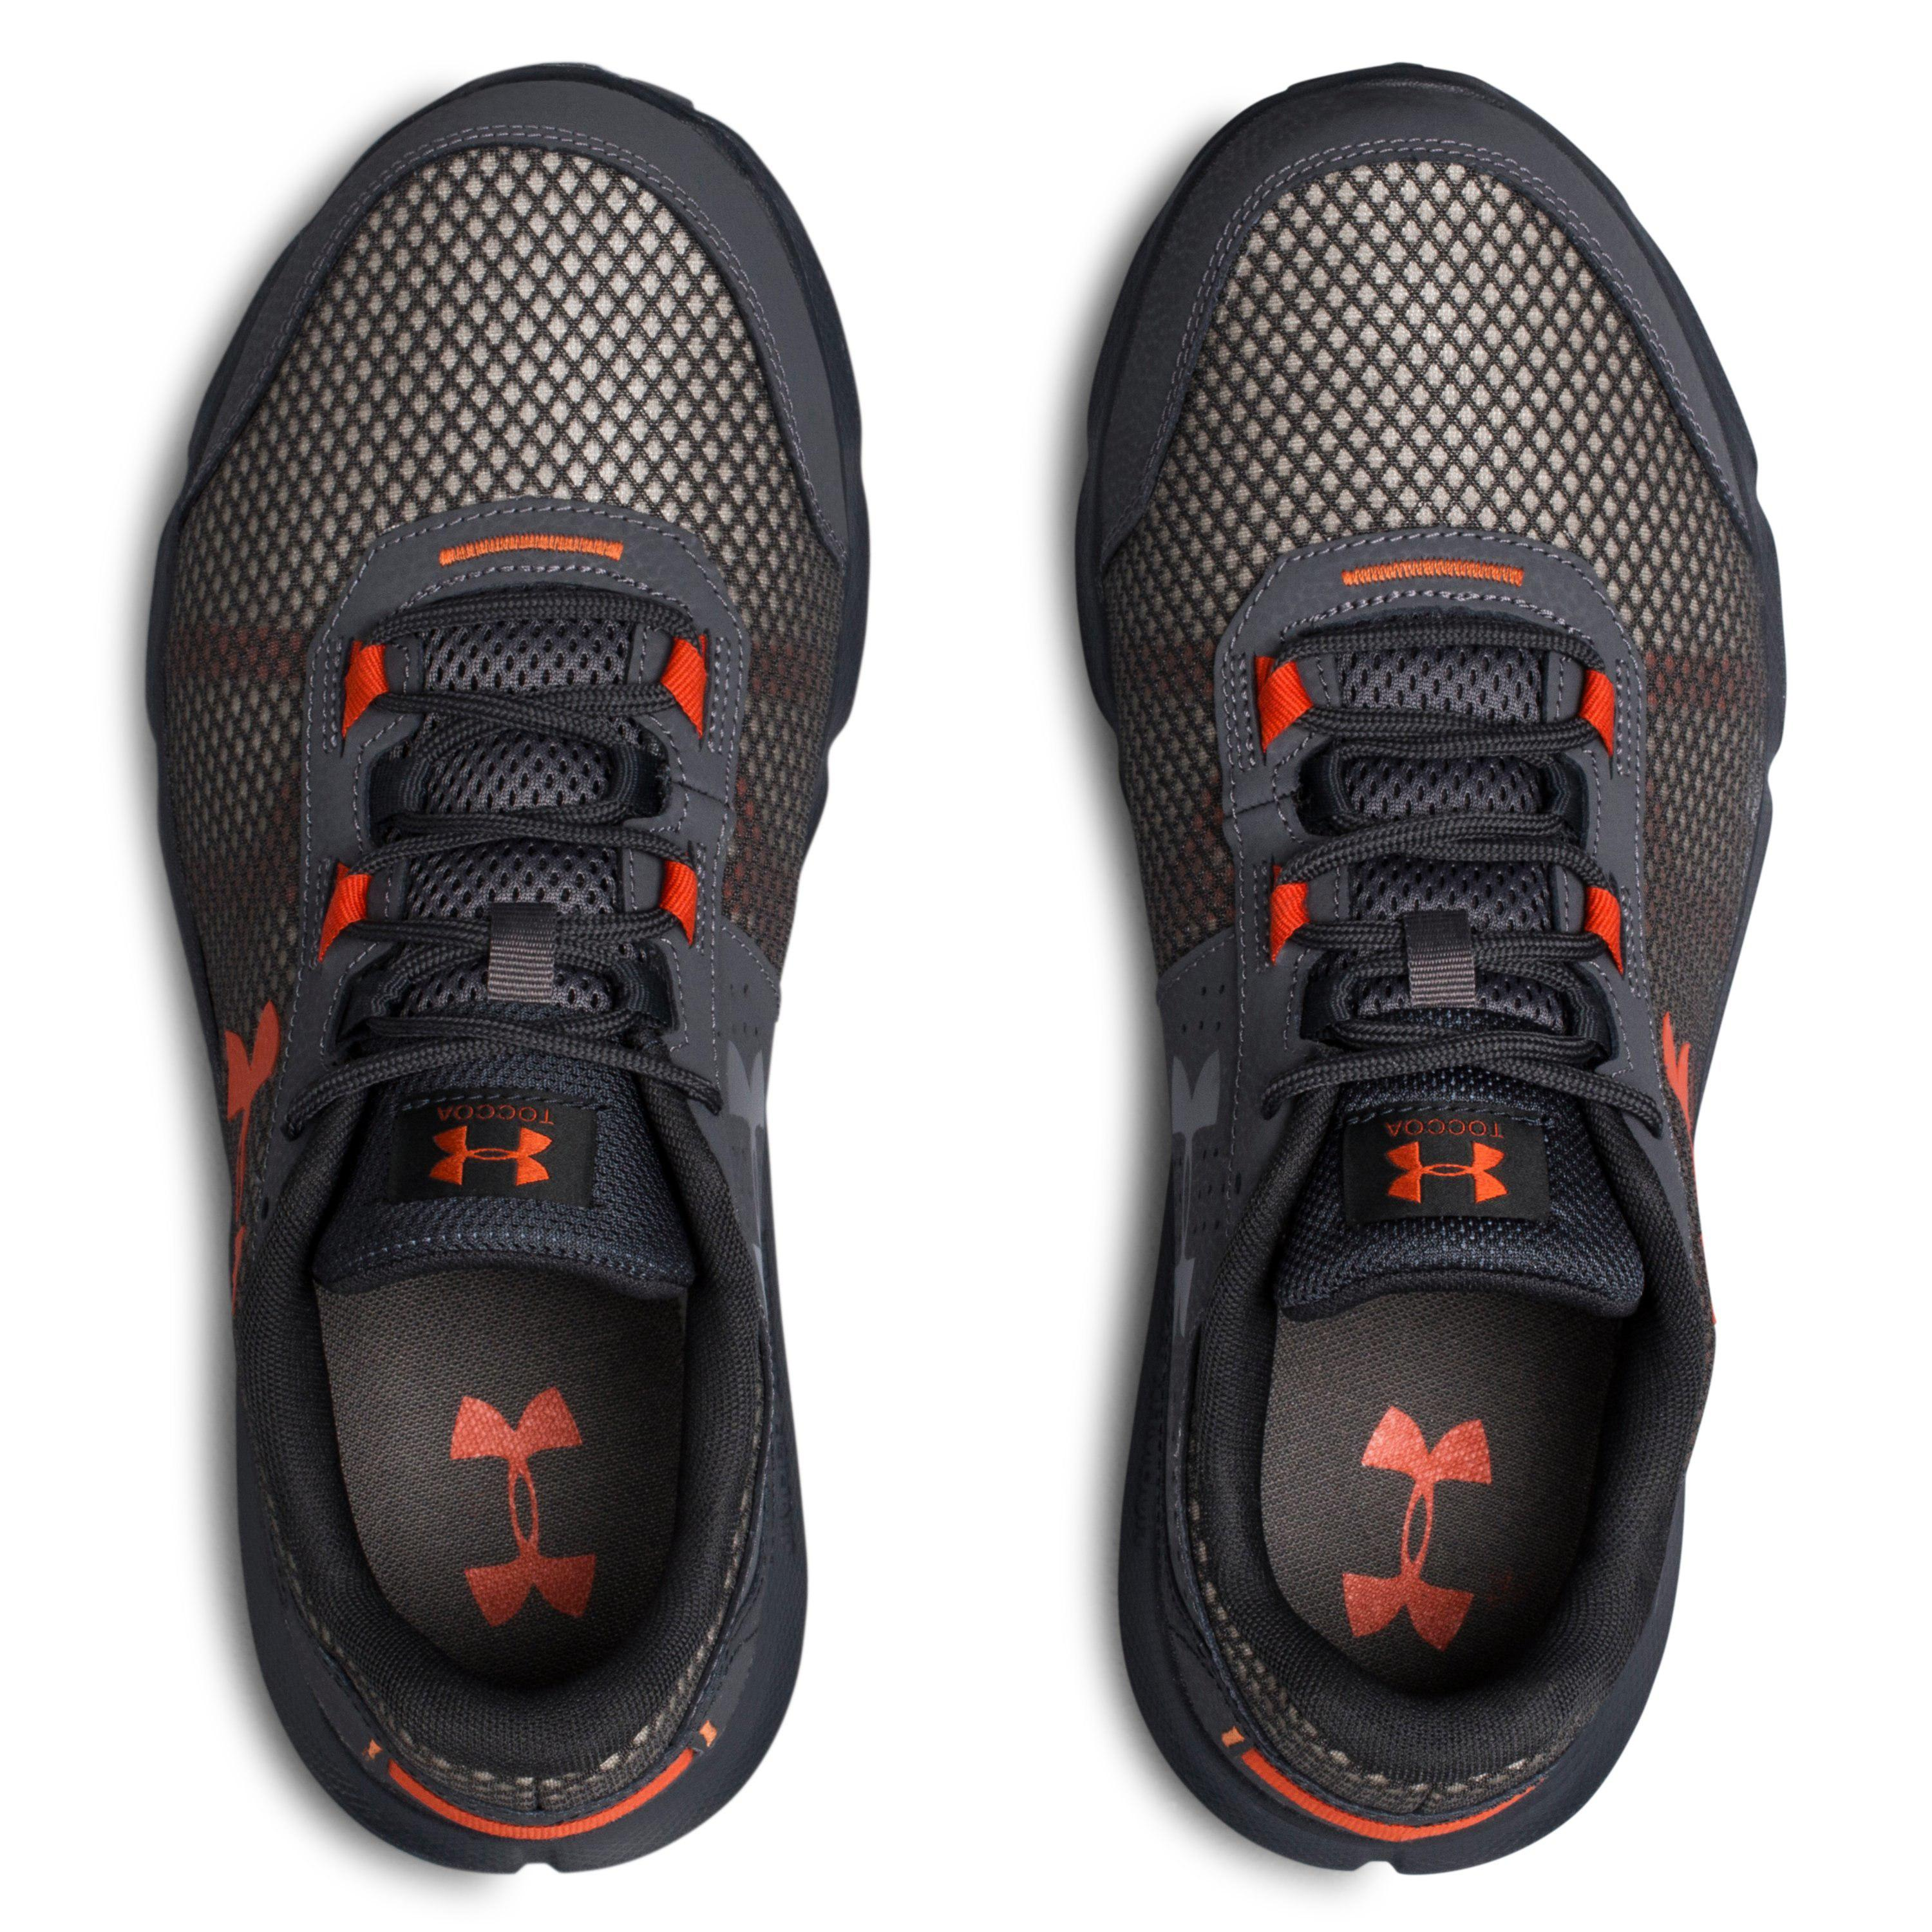 5d2786598698 Lyst - Under Armour Men s Ua Toccoa – Wide (4e) Running Shoes in ...